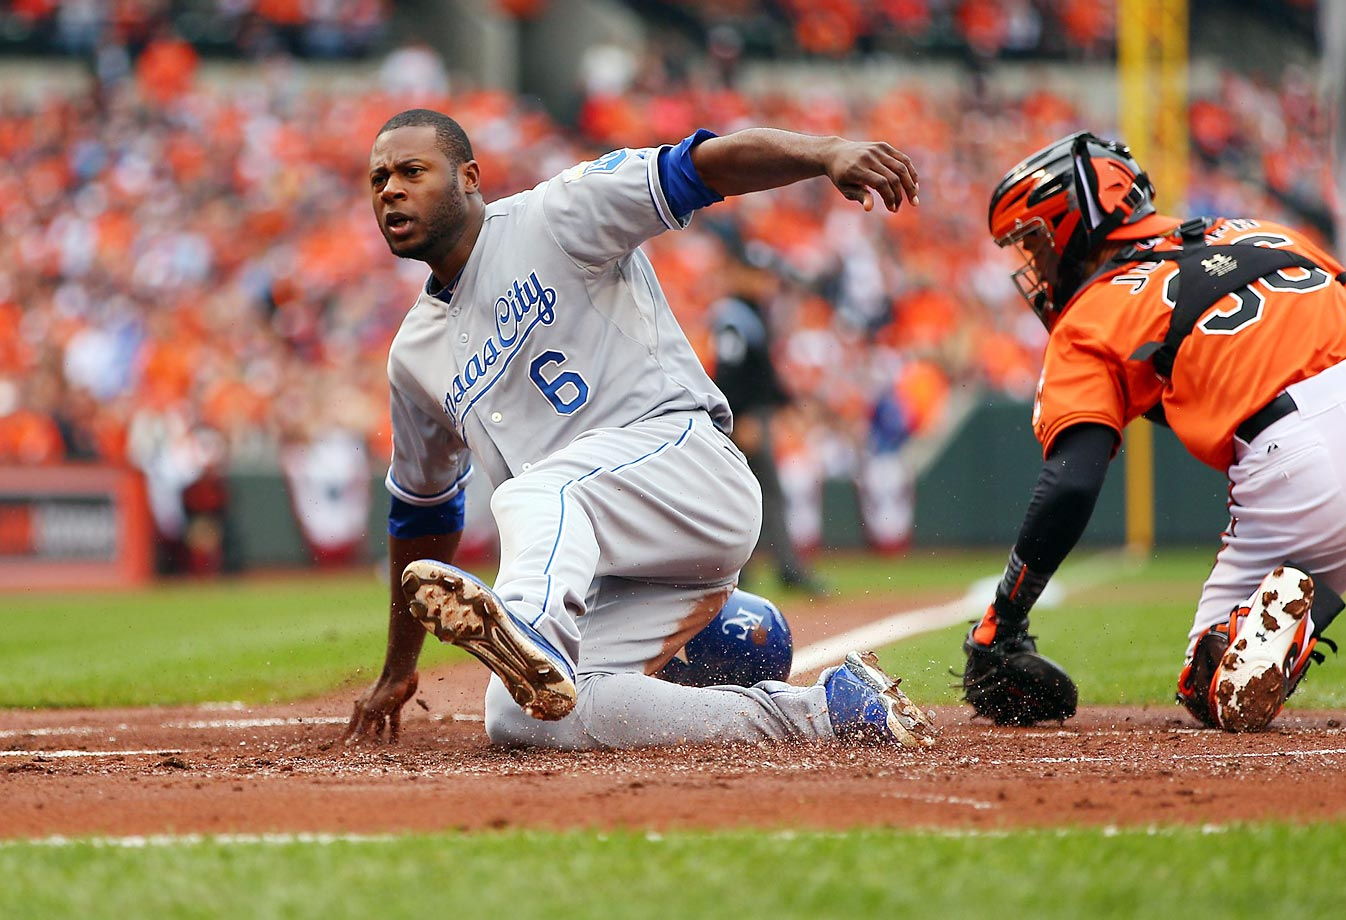 Kansas City's Lorenzo Cain scores in the first inning of Game 2 of the ALCS, against Baltimore.